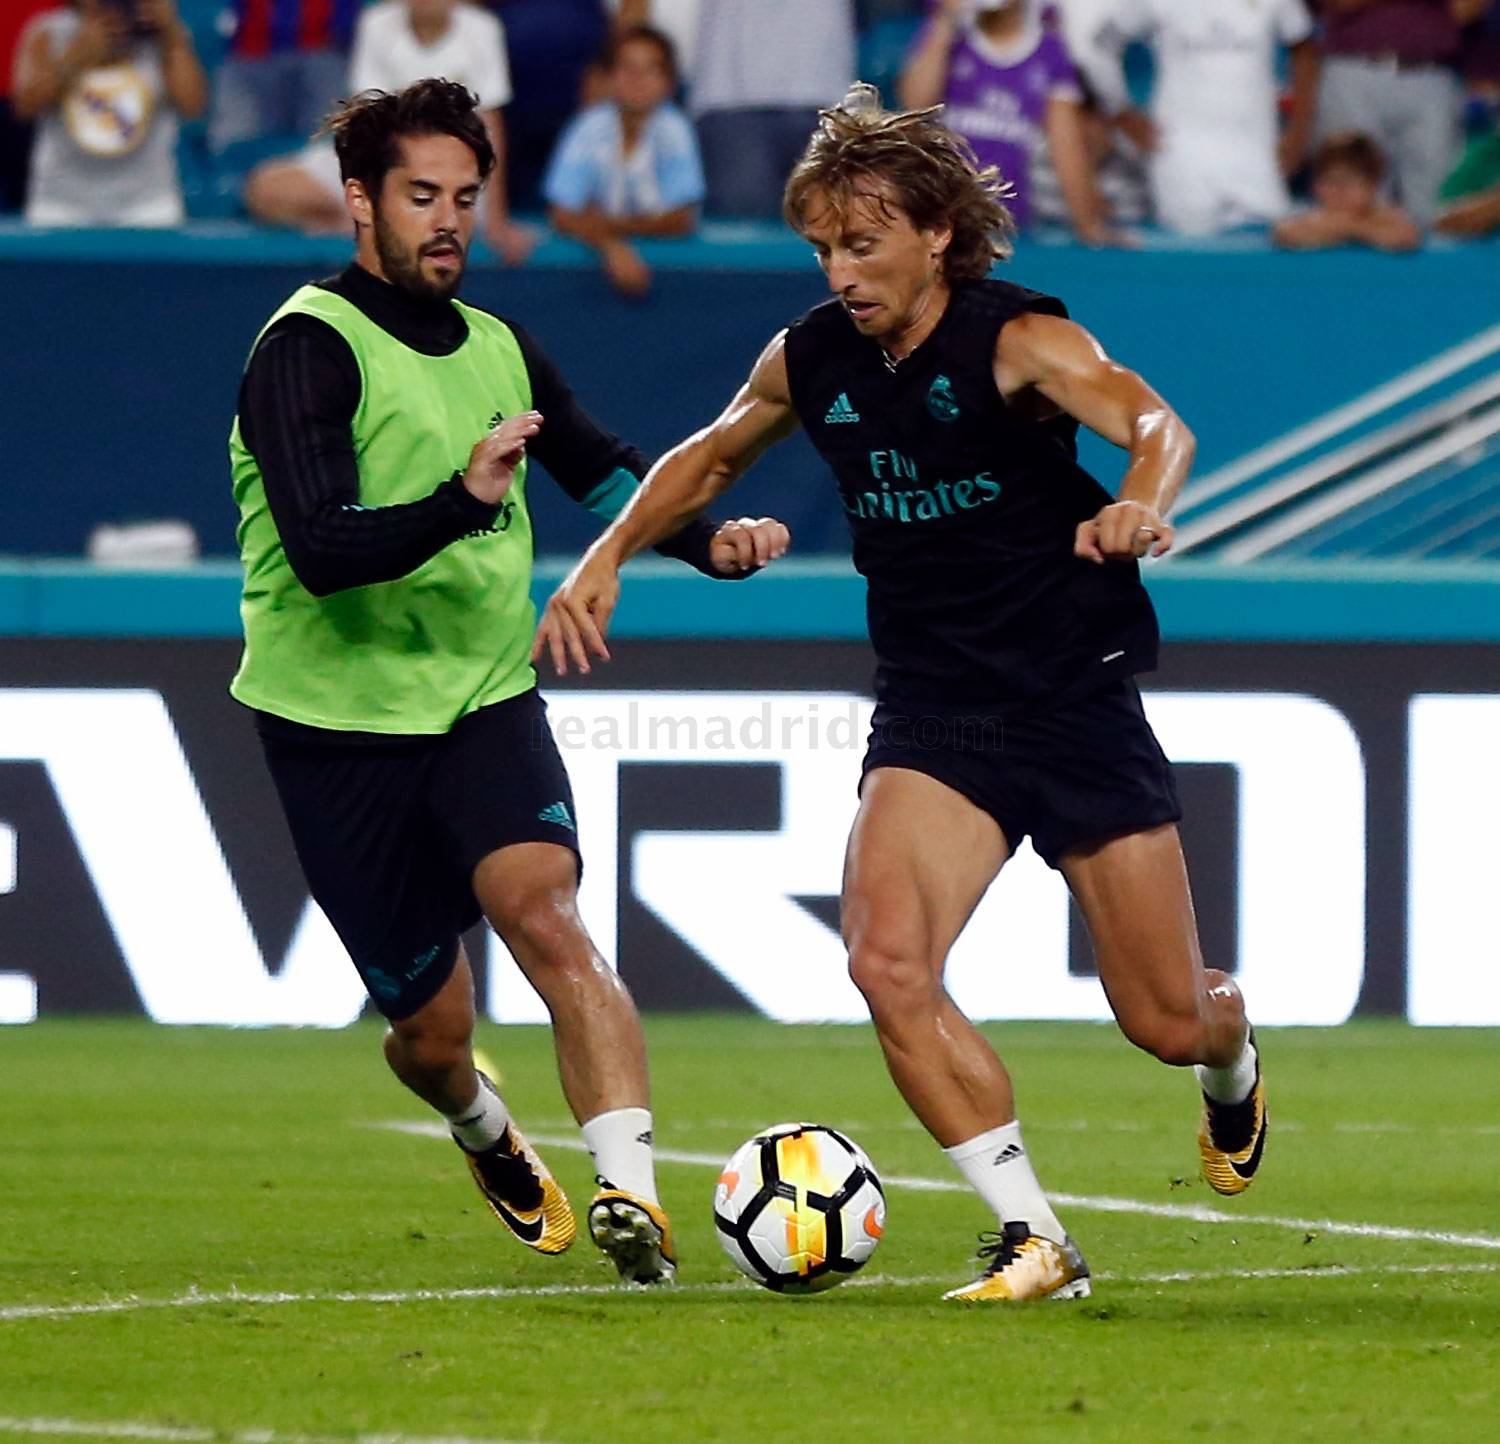 Real Madrid - Entrenamiento del Real Madrid en Miami - 29-07-2017